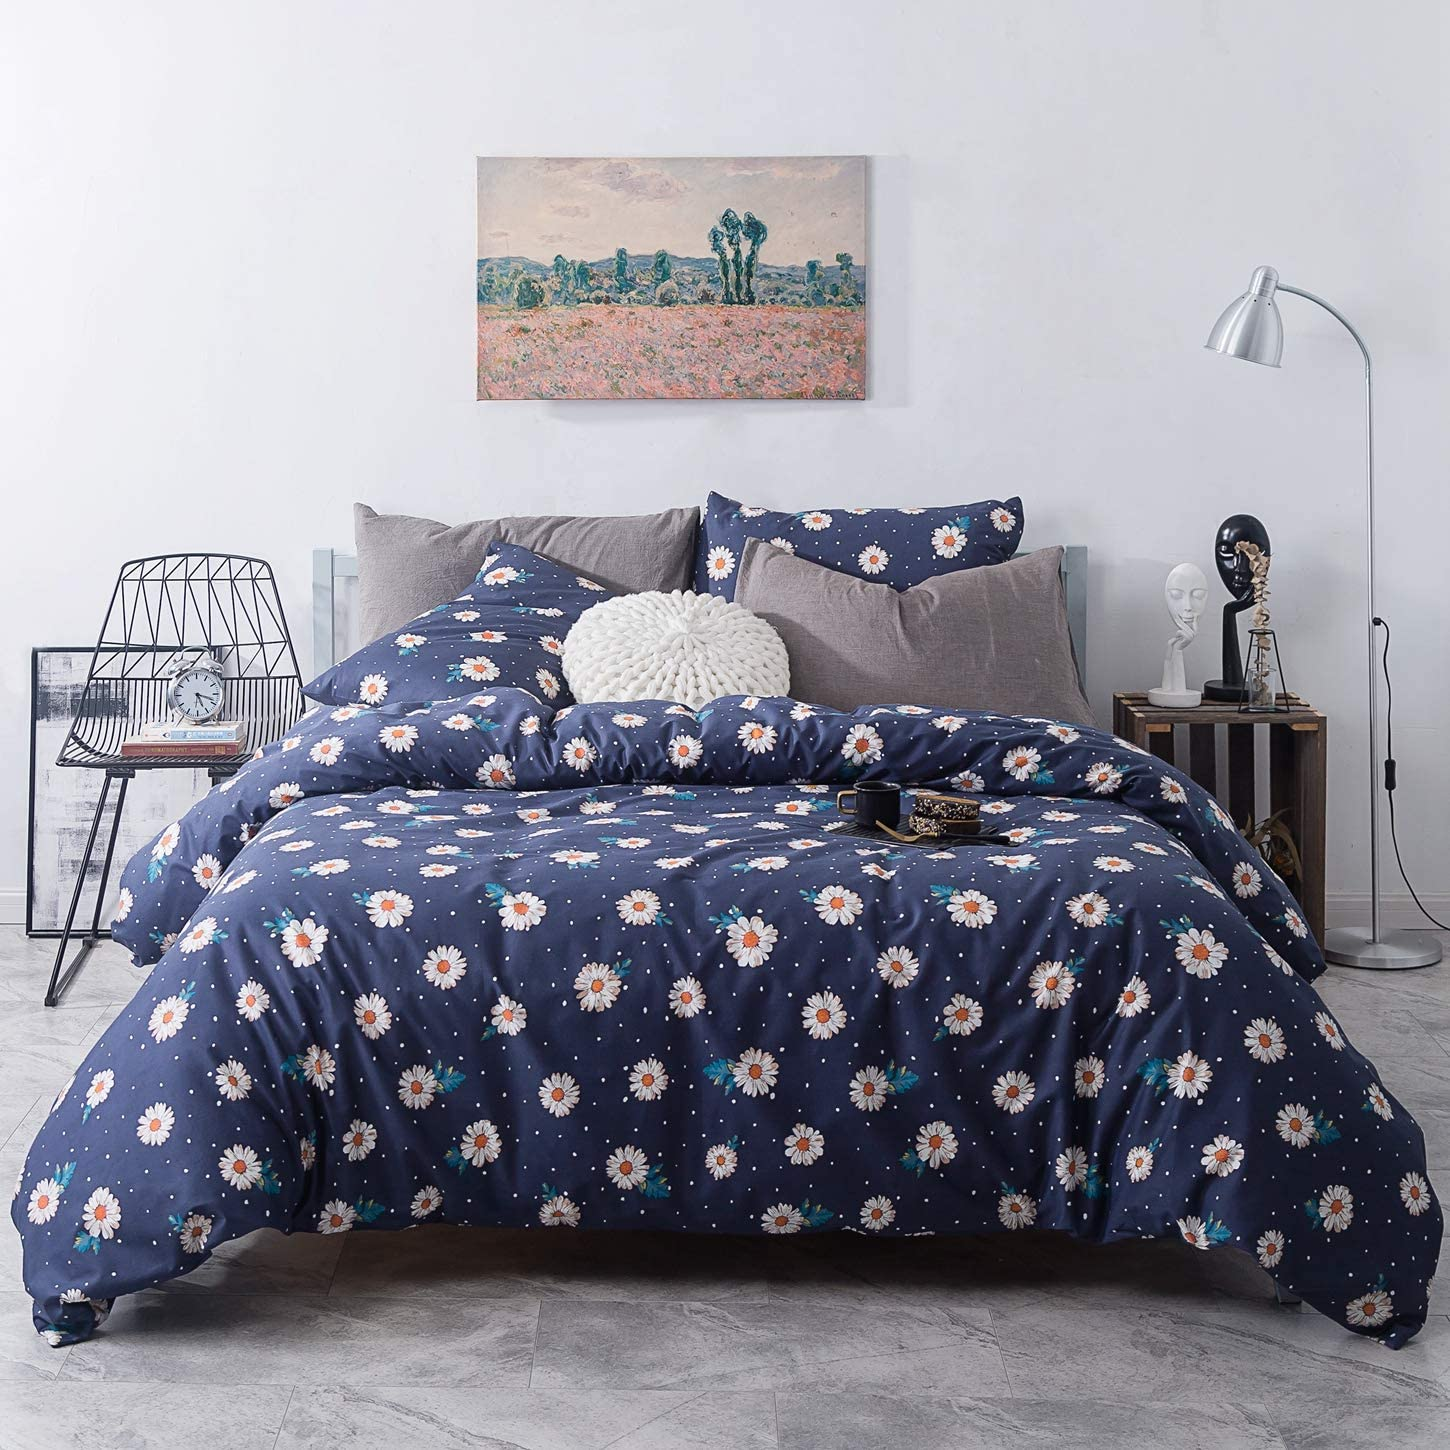 SUSYBAO 3 Pieces Duvet Cover Set 100% Natural Cotton Navy Queen Size White Floral Pattern Bedding Set with Zipper Ties 1 Dots Print Duvet Cover 2 Pillowcases Hotel Quality Soft Breathable Lightweight